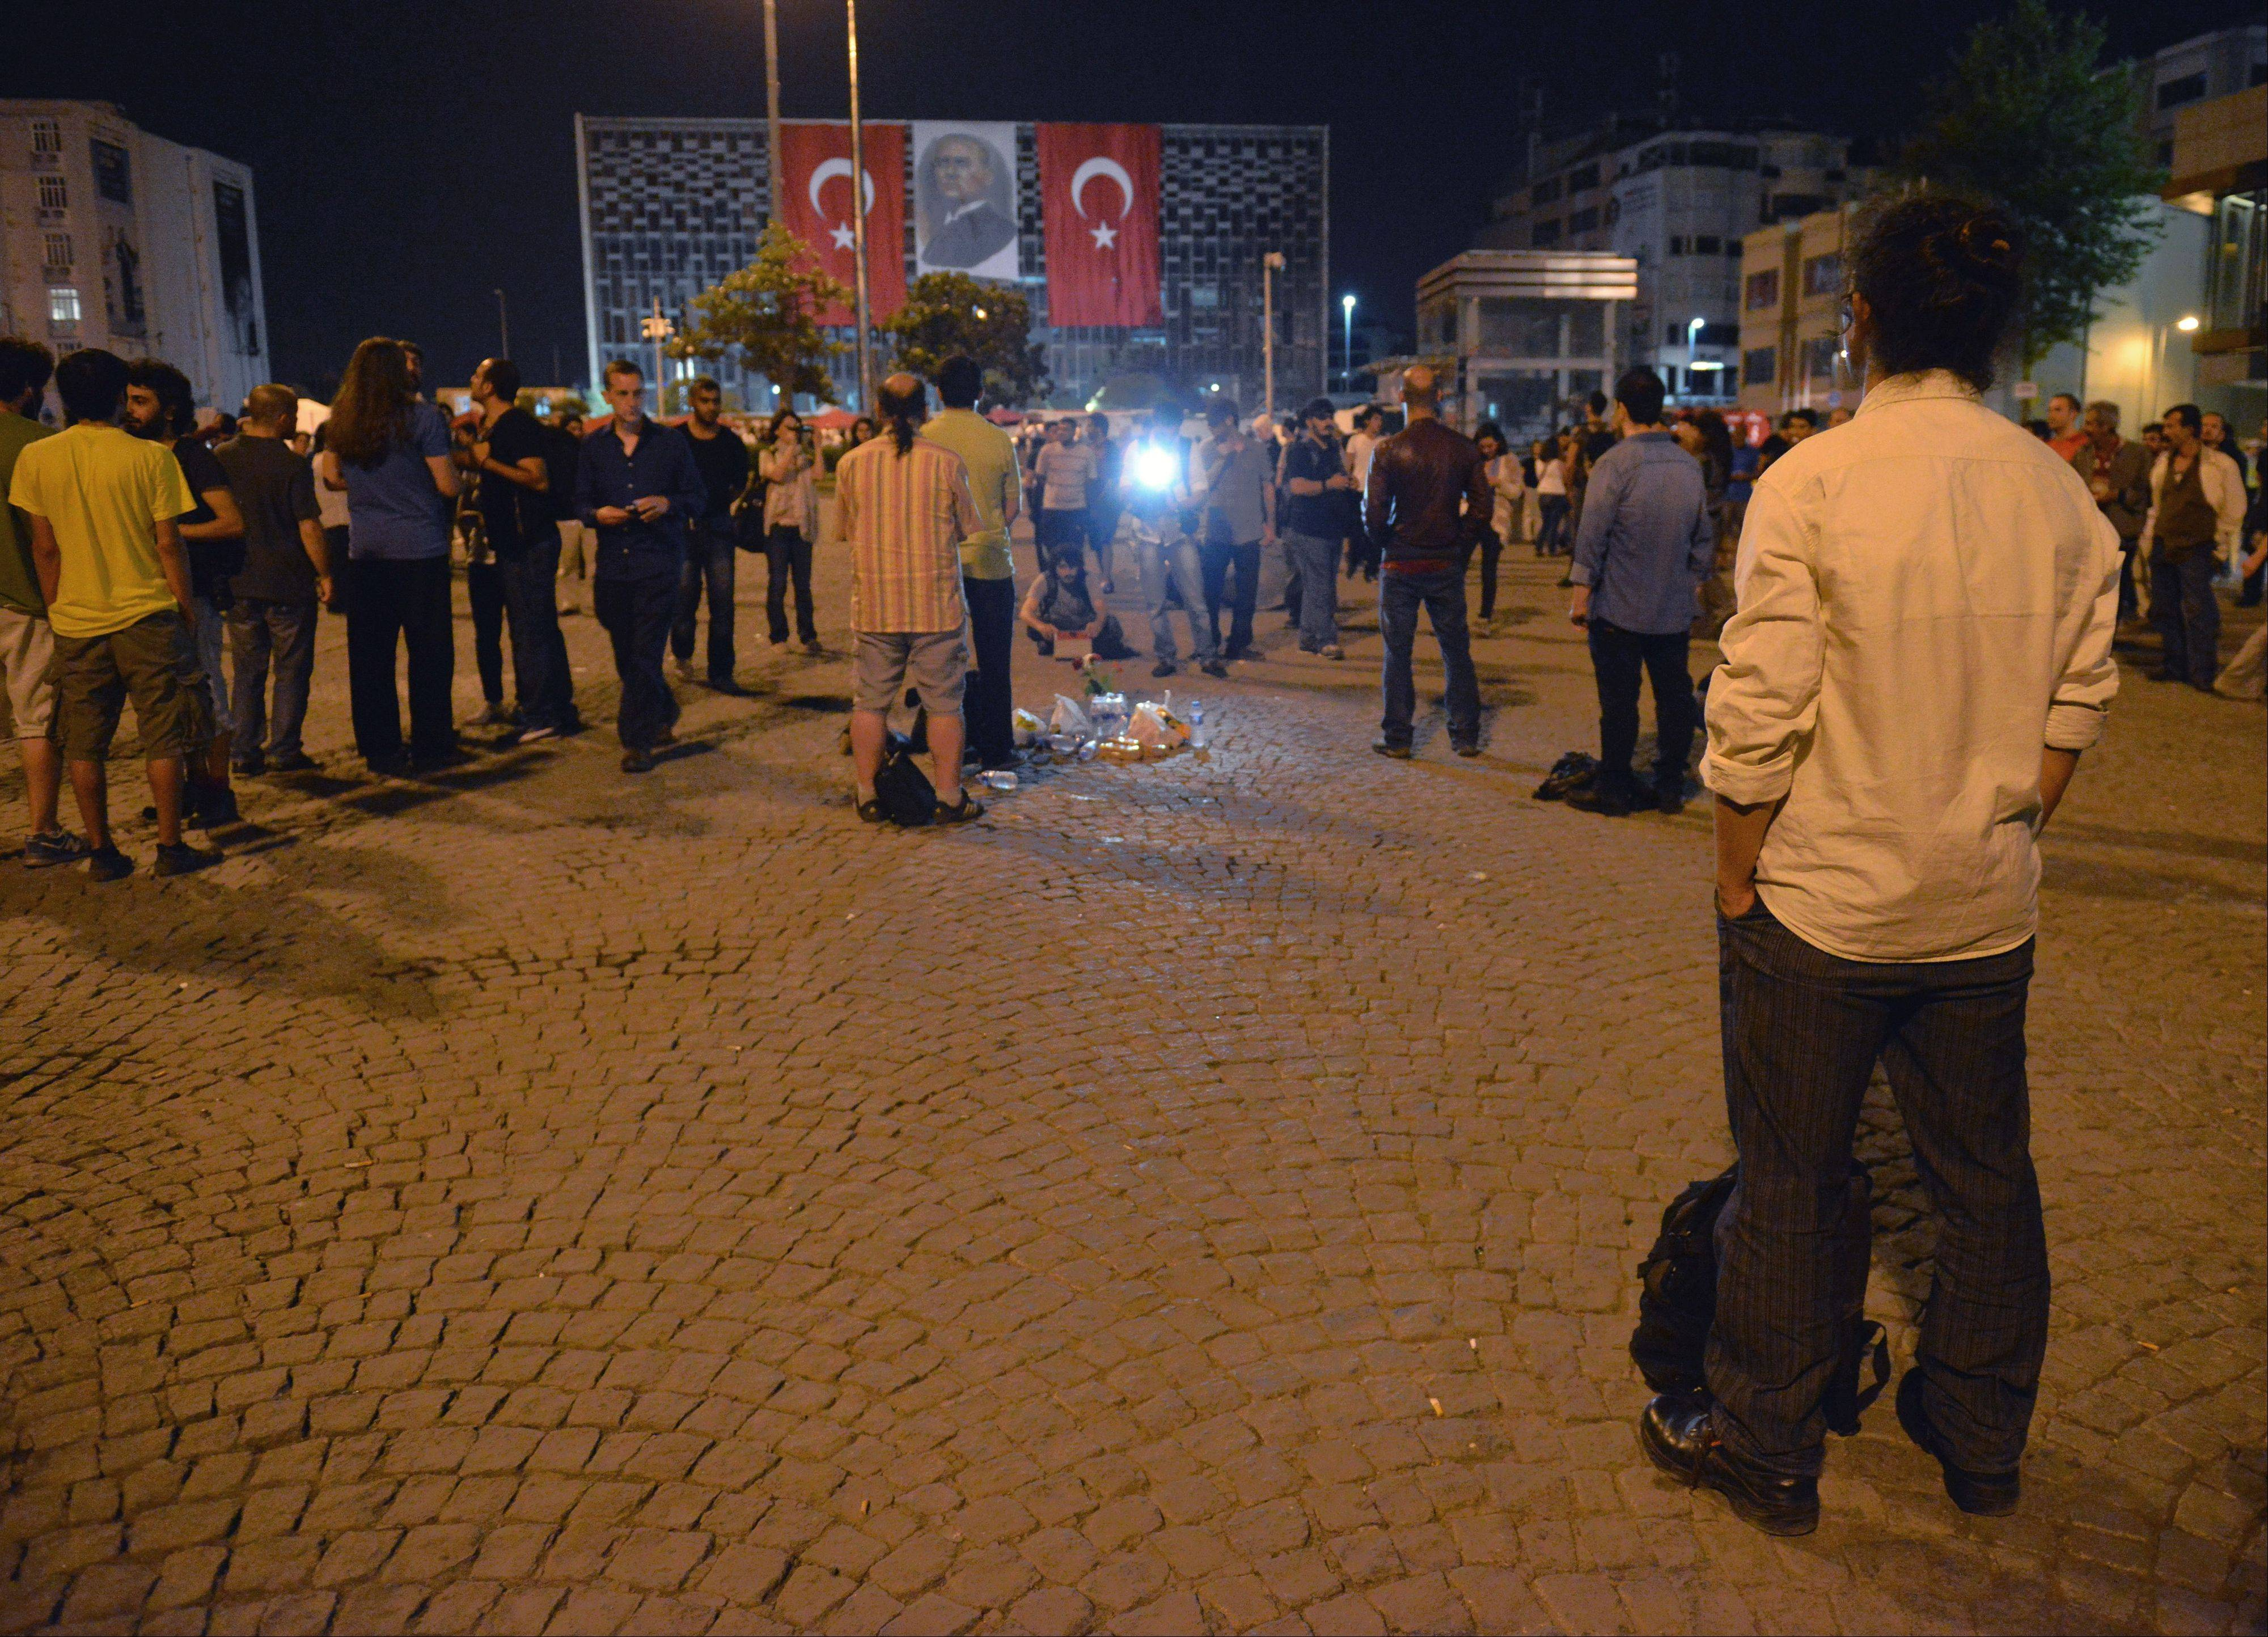 Erdem Gunduz, right, stands silently on Taksim Square in Istanbul, Turkey, early Tuesday, June 18, 2013. After weeks of confrontation with police, sometimes violent, Turkish protesters are using a new form of resistance: standing silently. The development started late Monday when a solitary man began standing in passive defiance against Prime Minister Recep Tayyip Erdogan's authority at Istanbul's central Taksim Square. The square has been sealed off from mass protests since police cleared it over the weekend. The man has identified himself as Erdem Gunduz, a performance artist. His has sparked imitation by others and has provoked widespread comment on social media.